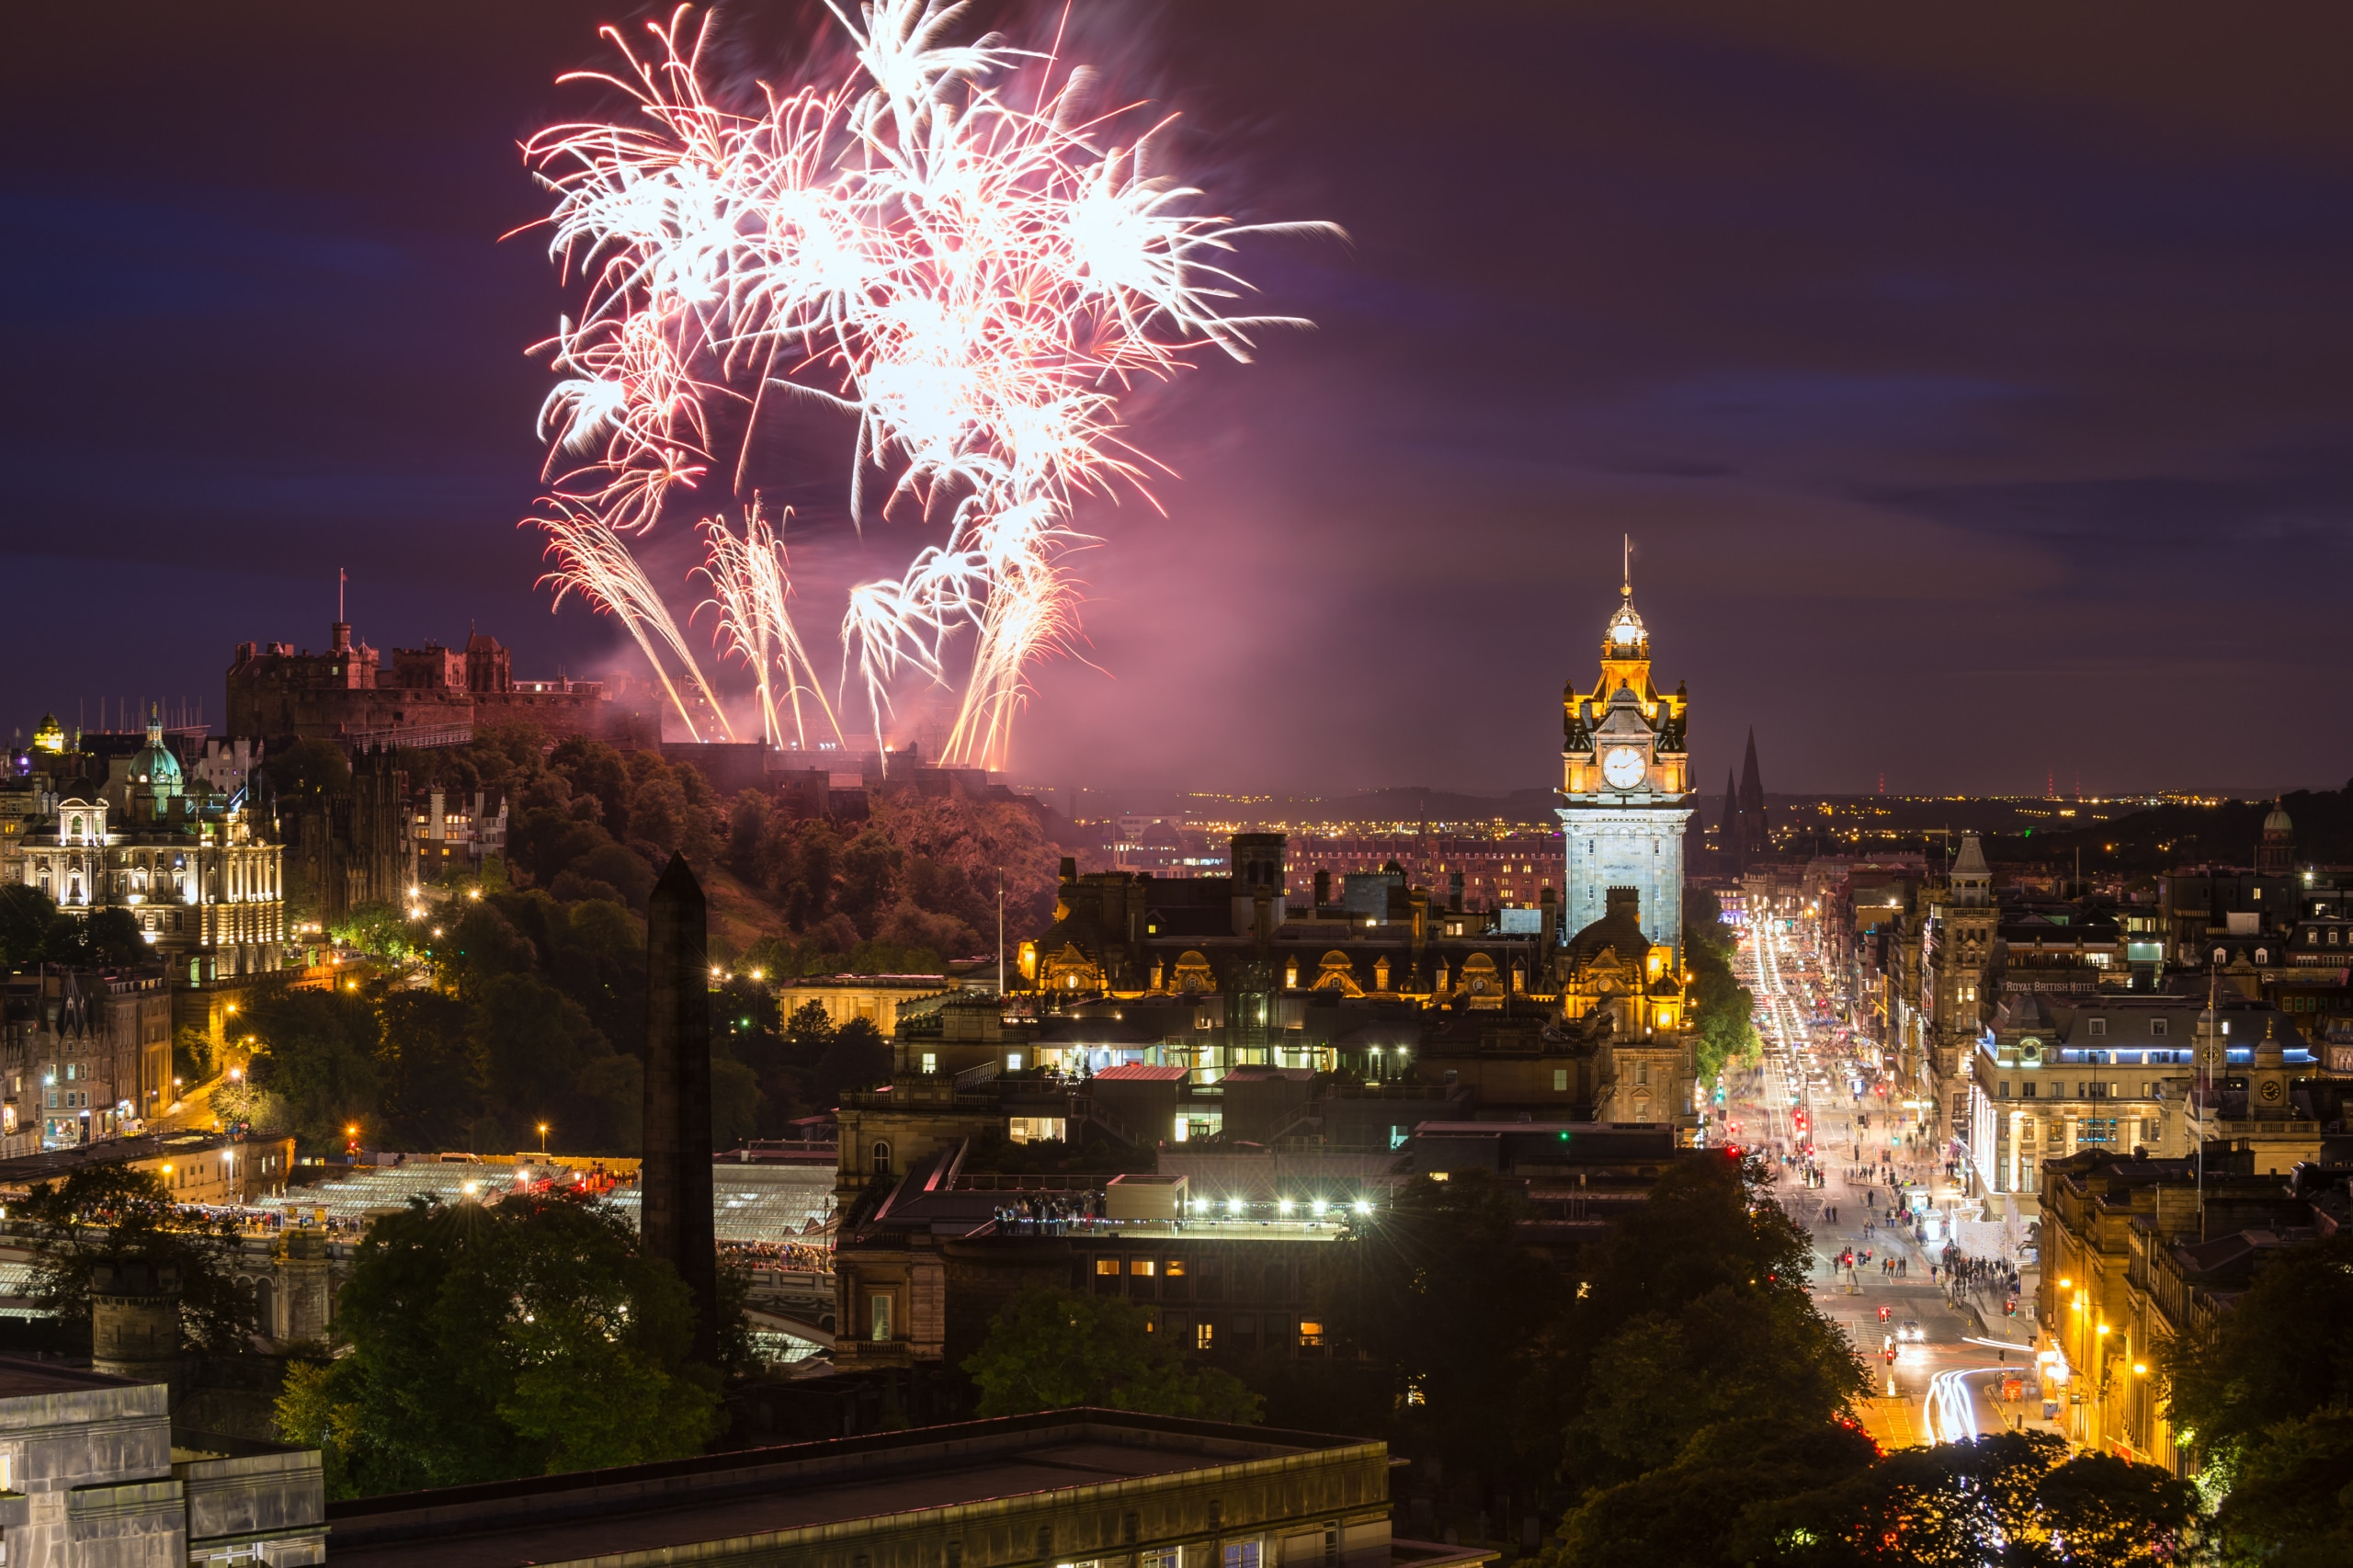 Edinburgh Cityscape with fireworks for Hogmanay